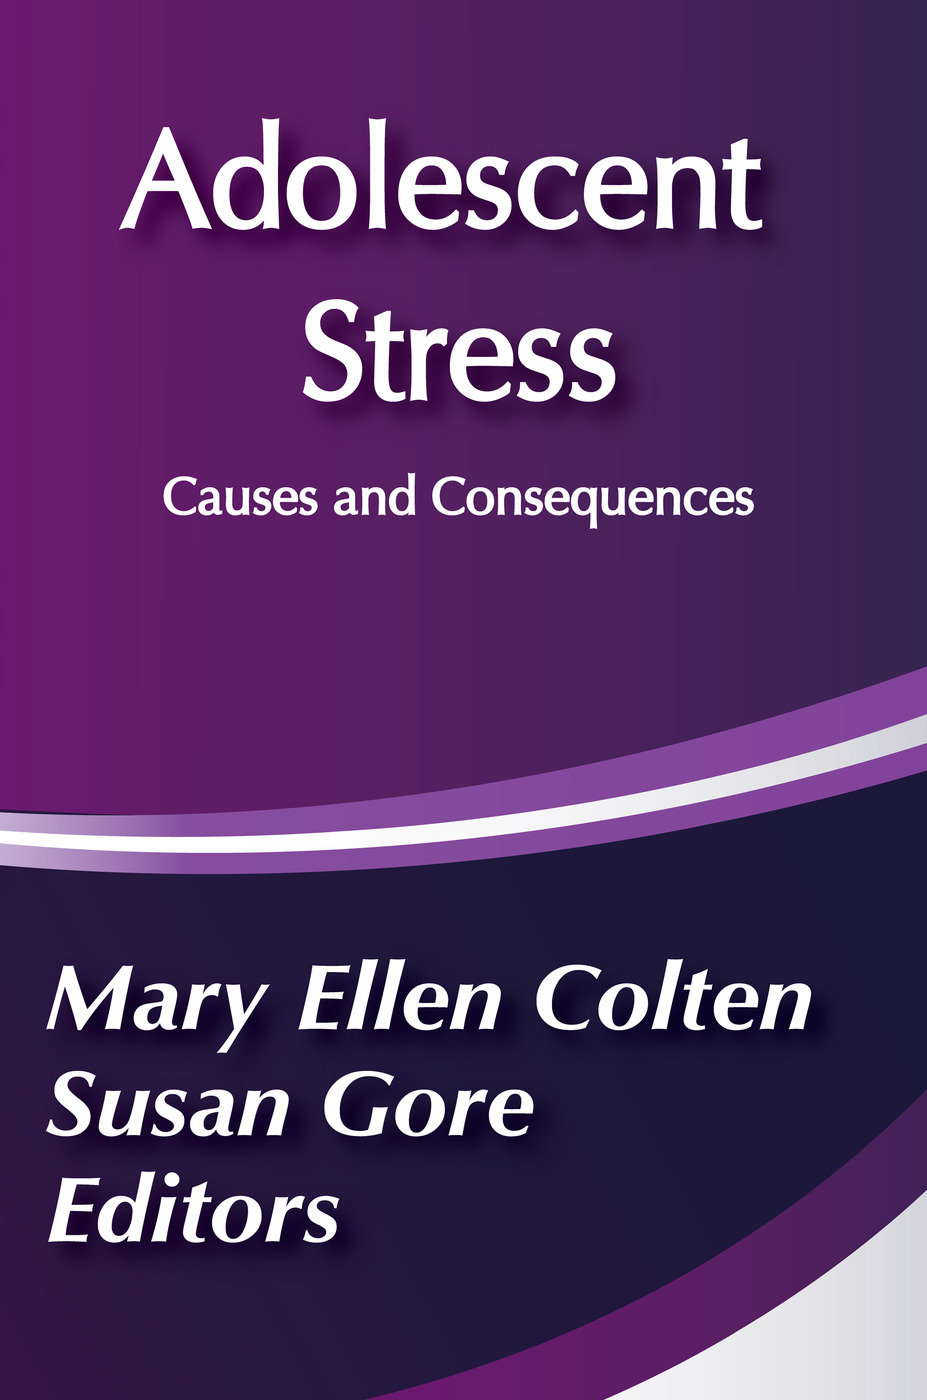 Adolescent Stress: Causes and Consequences book cover